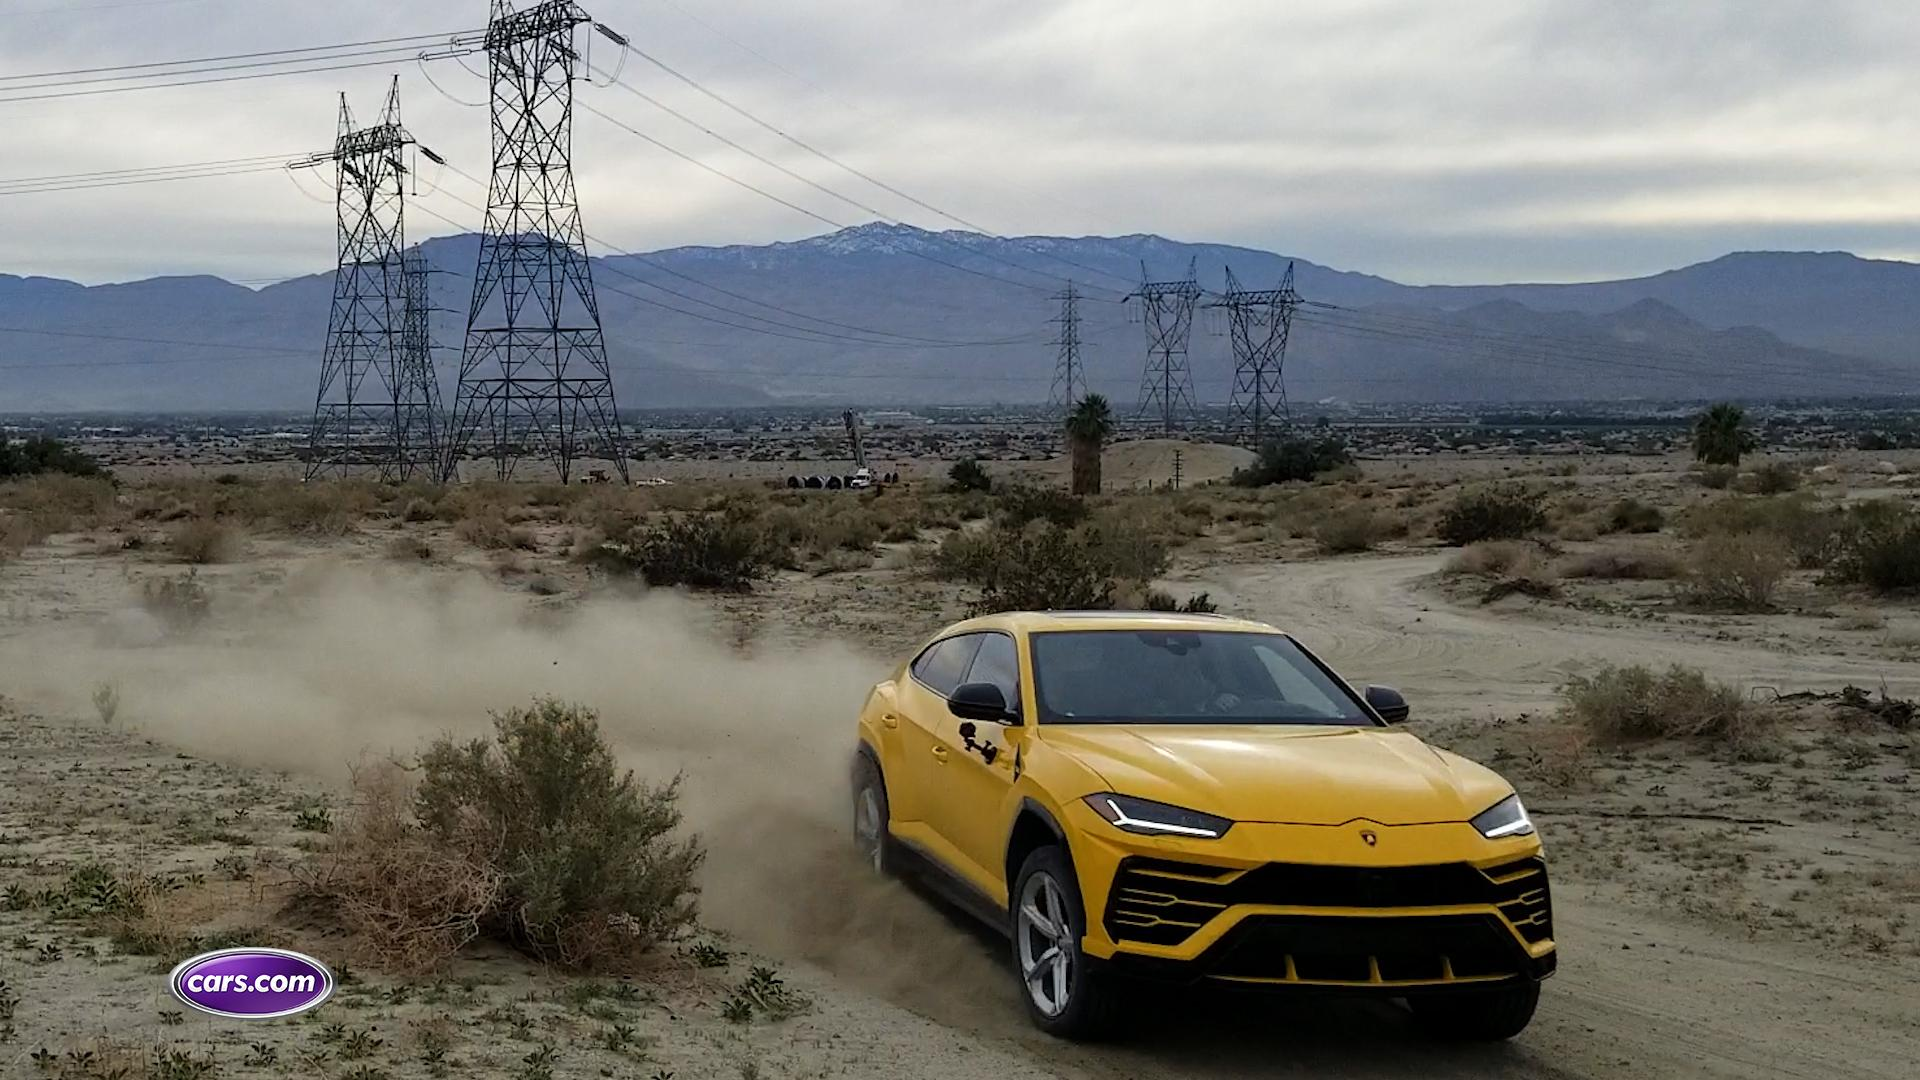 Video: 2019 Lamborghini Urus: First Drive — Cars.com